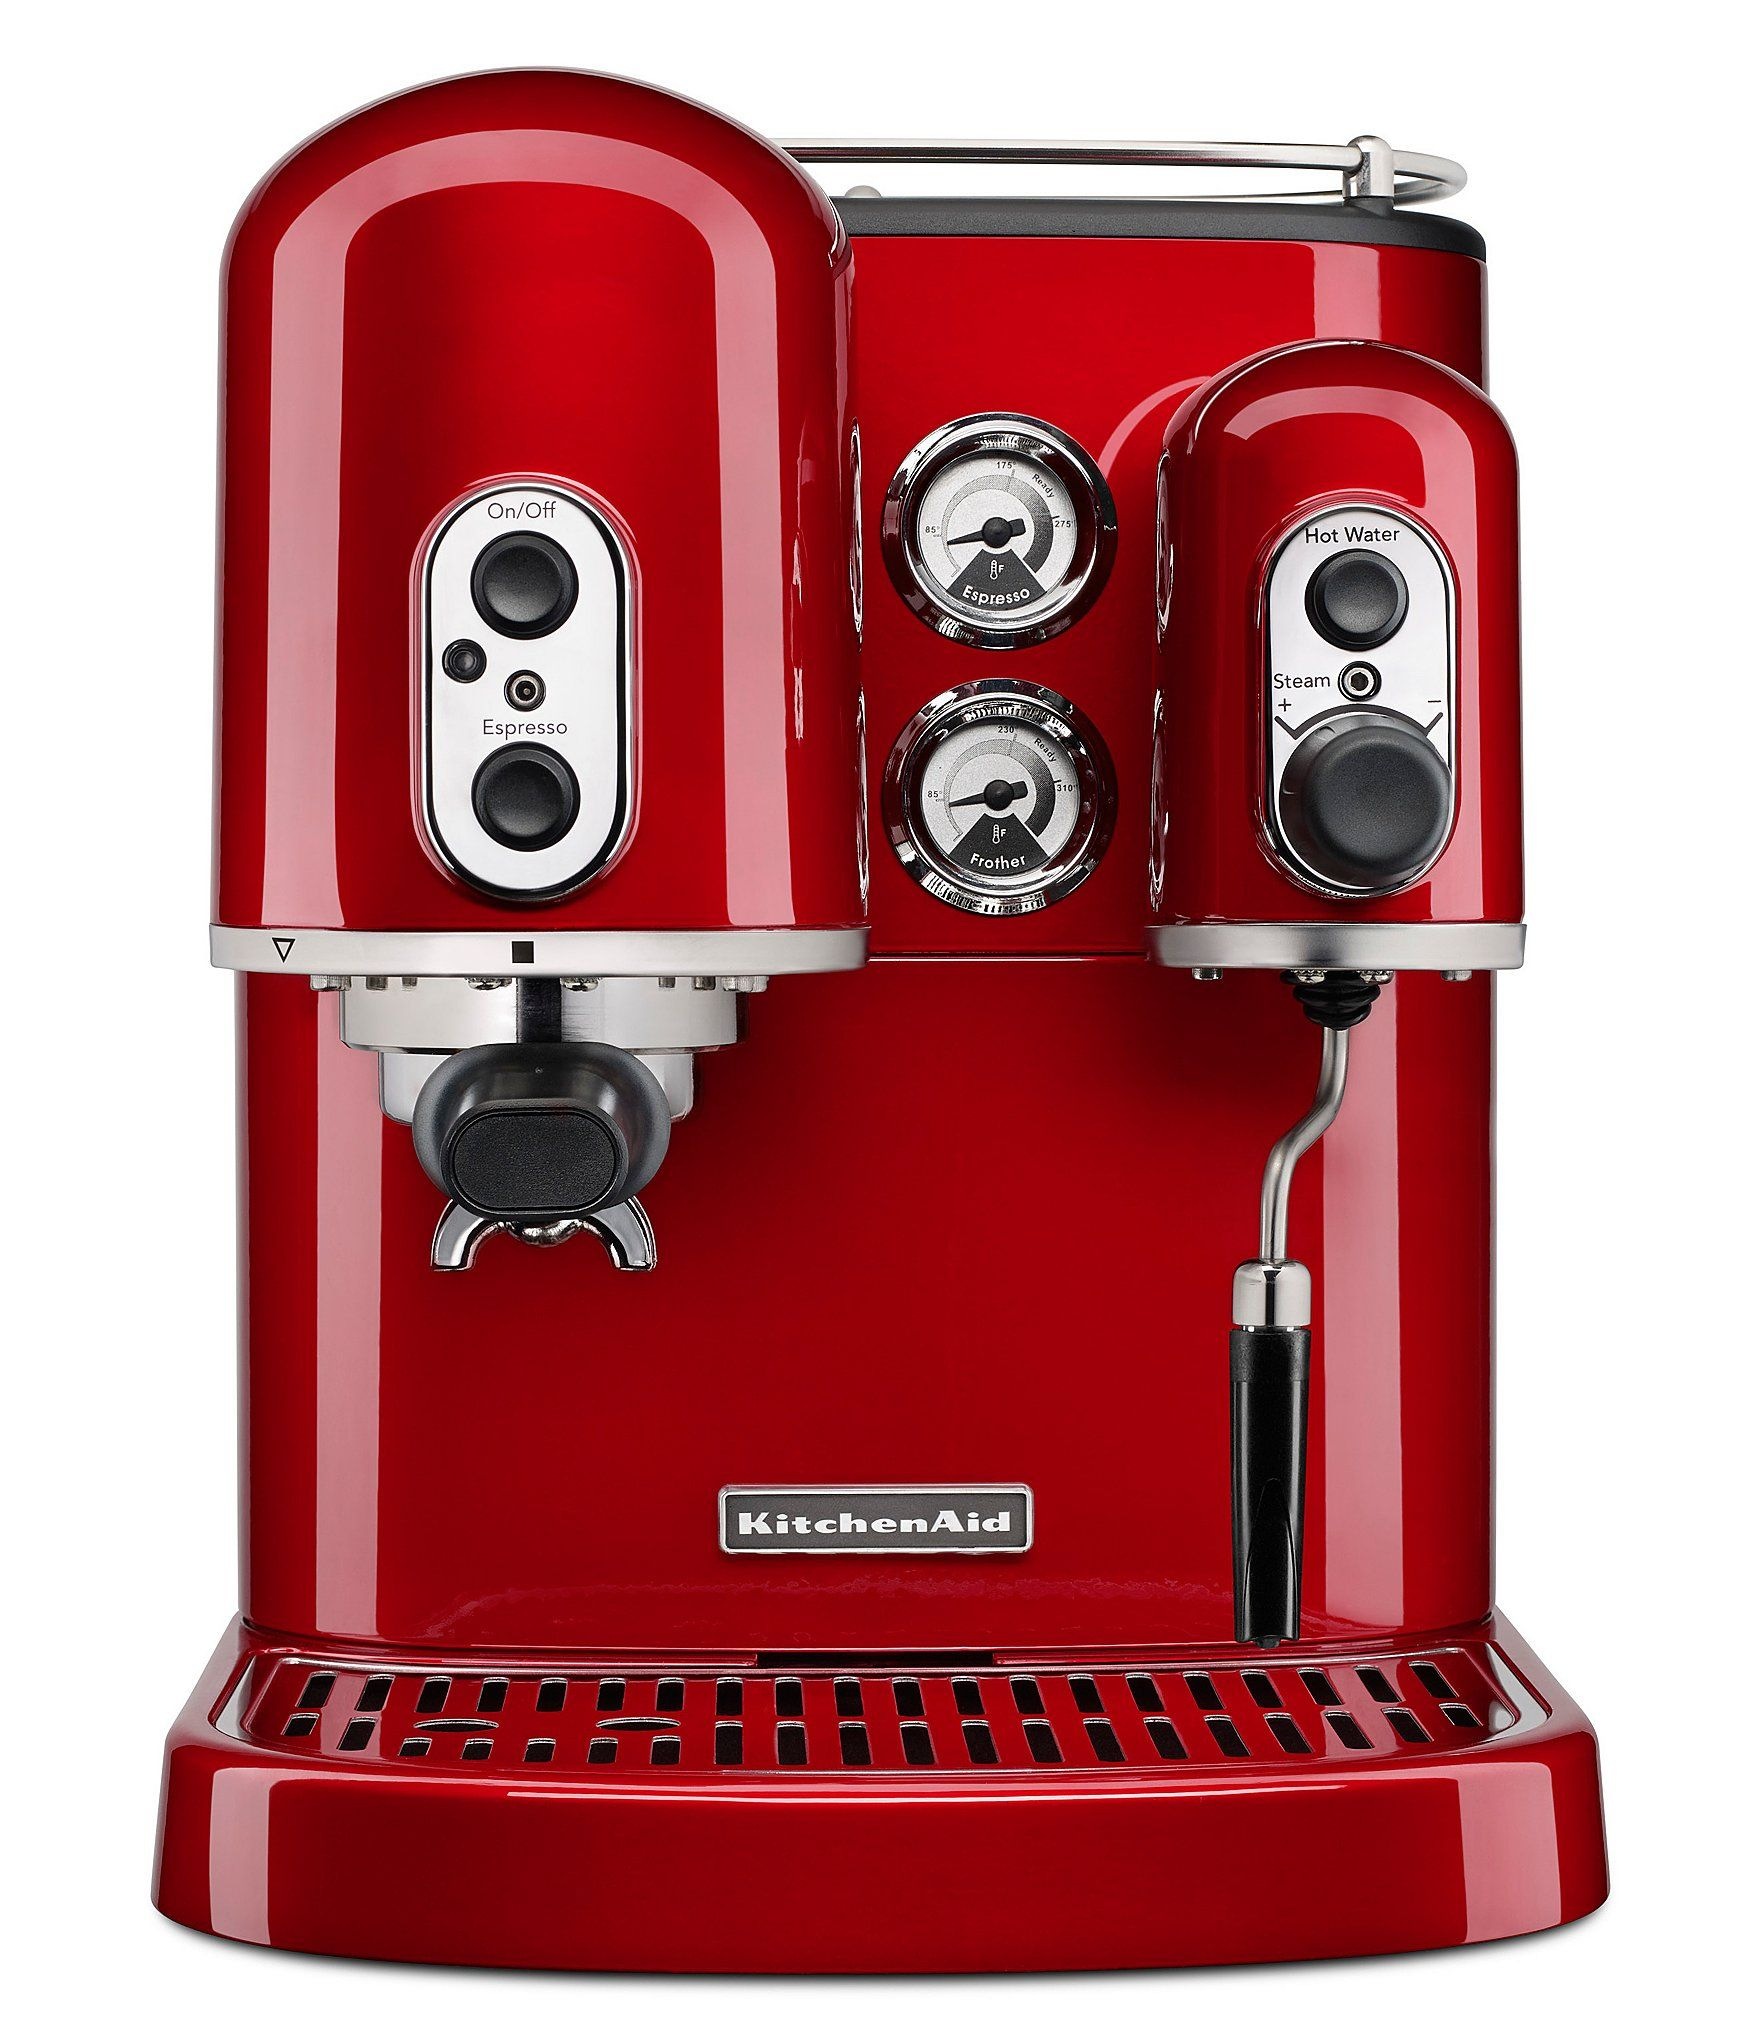 KitchenAid Pro Line Series Espresso Maker with Dual Independent Boilers - Candy Apple Red